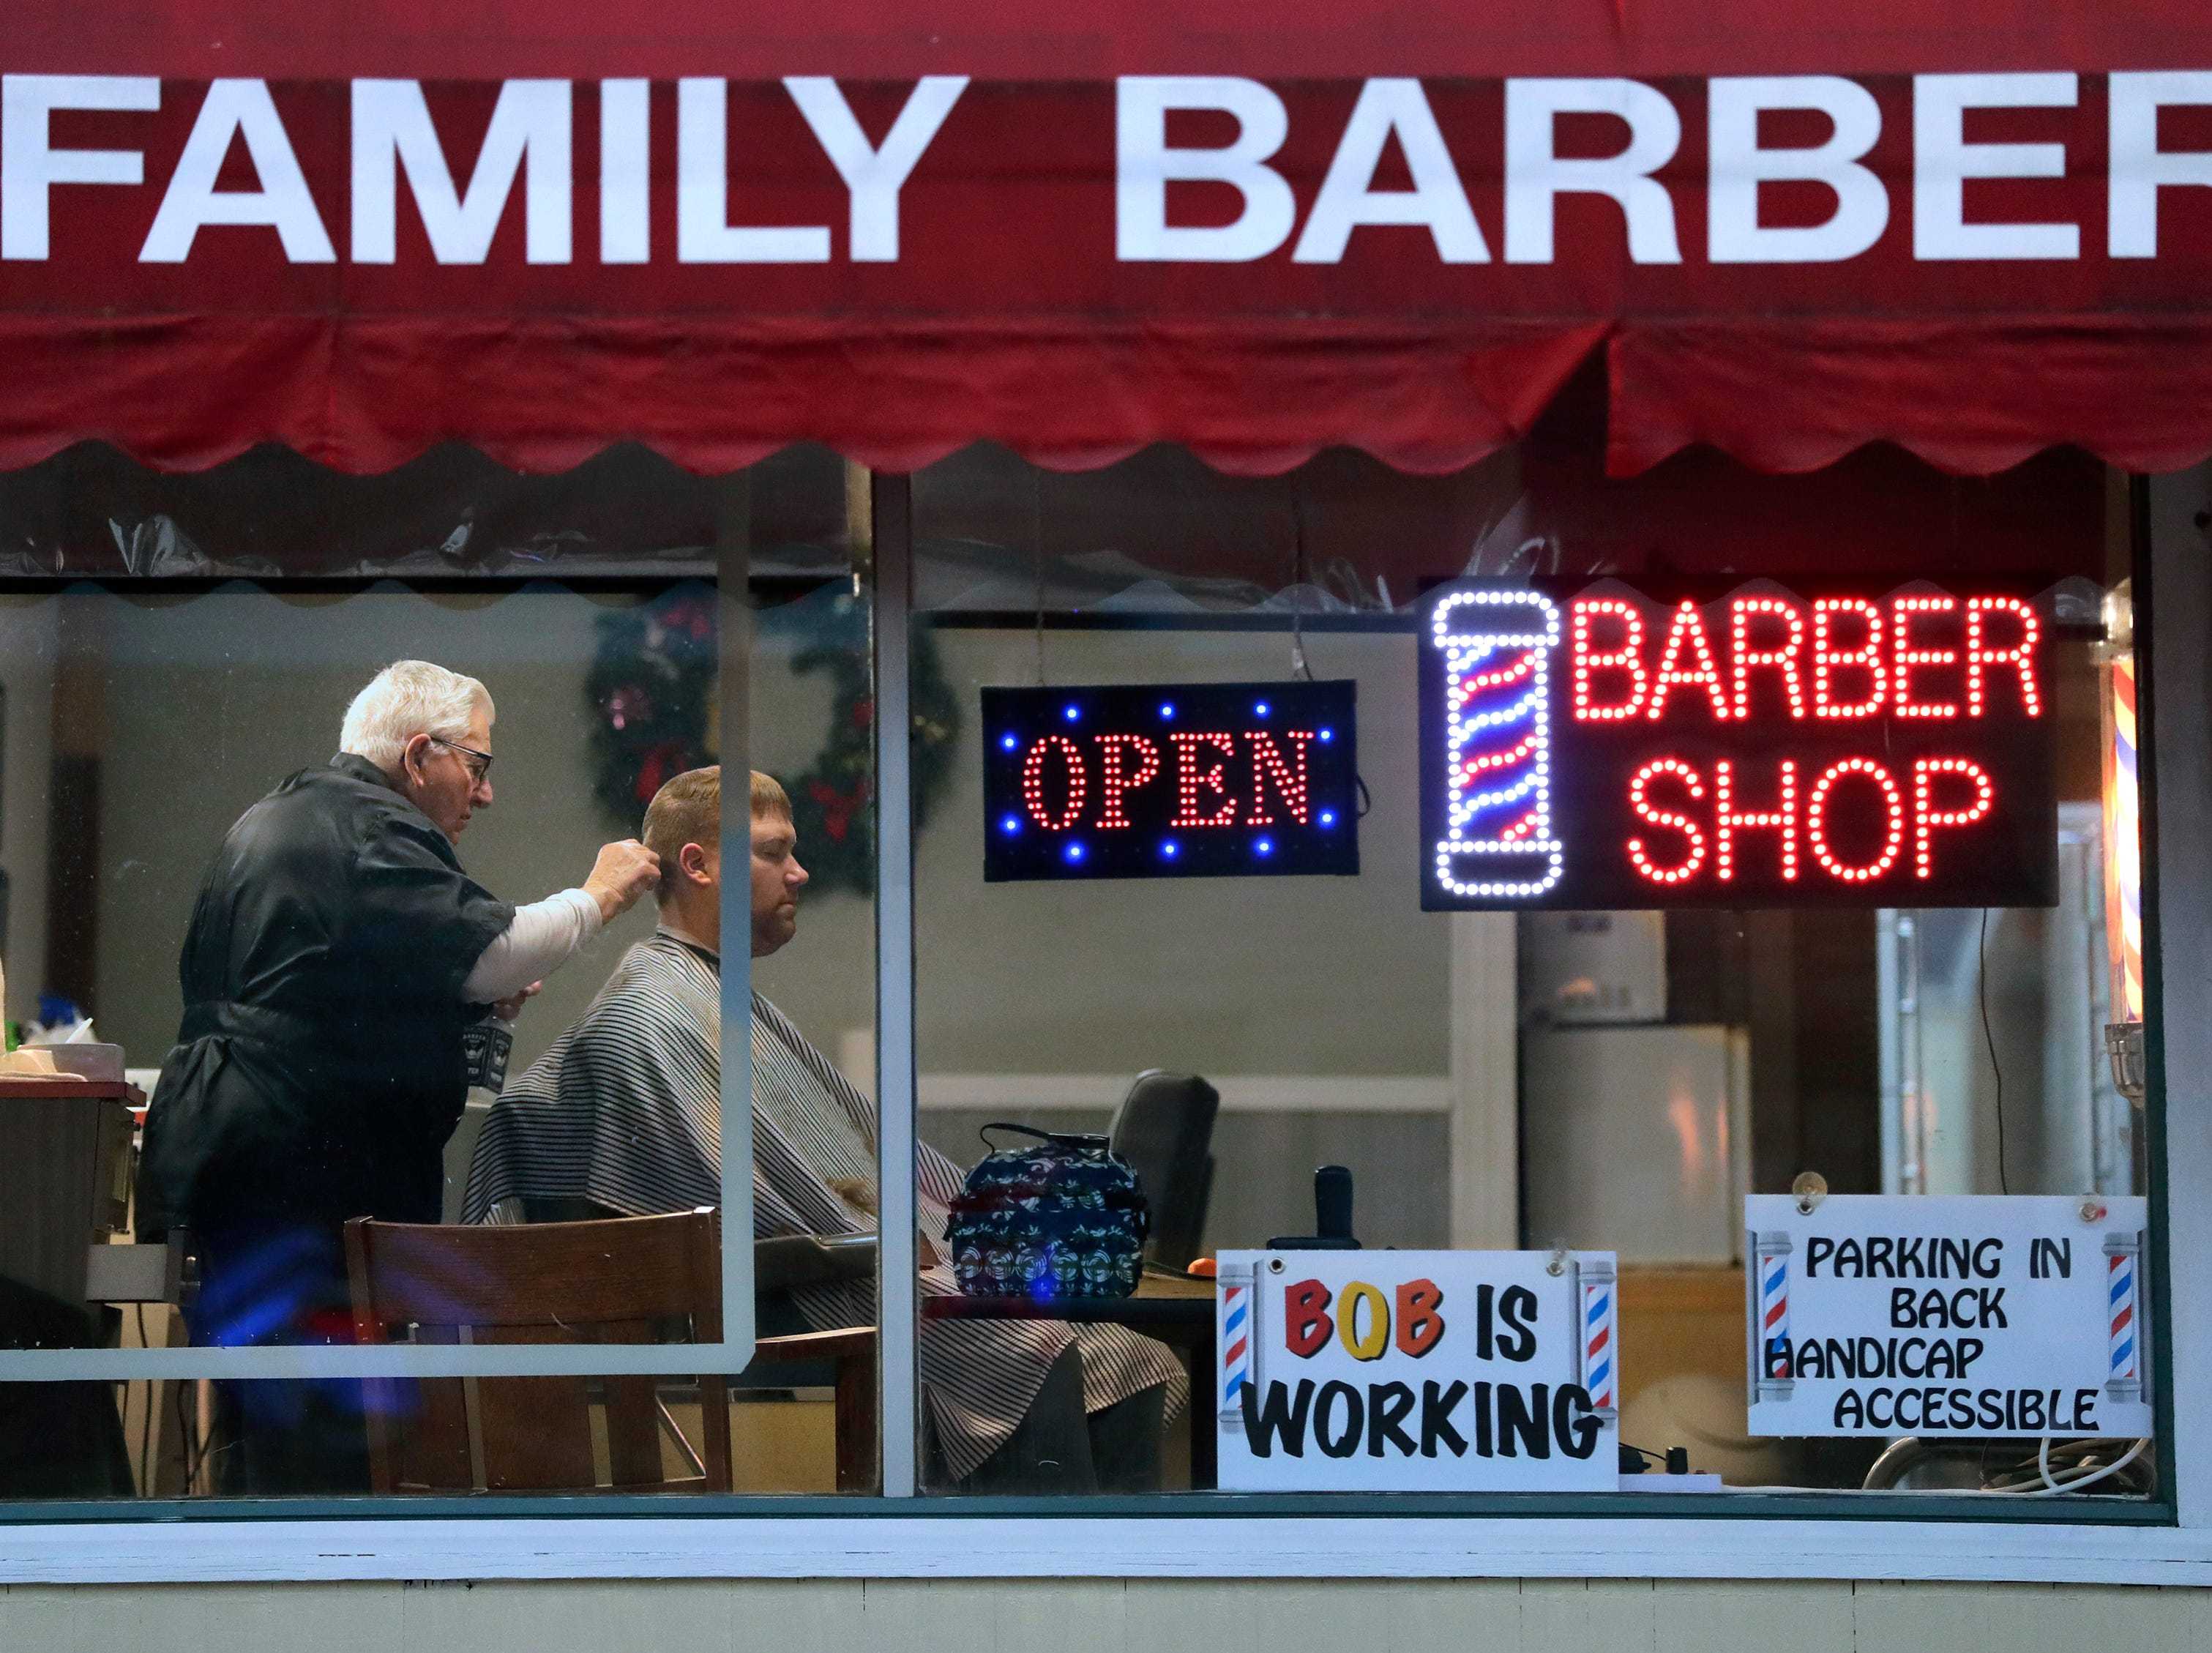 Bob Rohloff, left, of Appleton gives a haircut to Braxton Caswell of Hortonville Monday, January 7, 2019, at MWS Family Barbershop in downtown Hortonville, Wis. Rohloff, 86, says he's been cutting hair since 1948. The building was built the 1890's and has always been a barbershop.